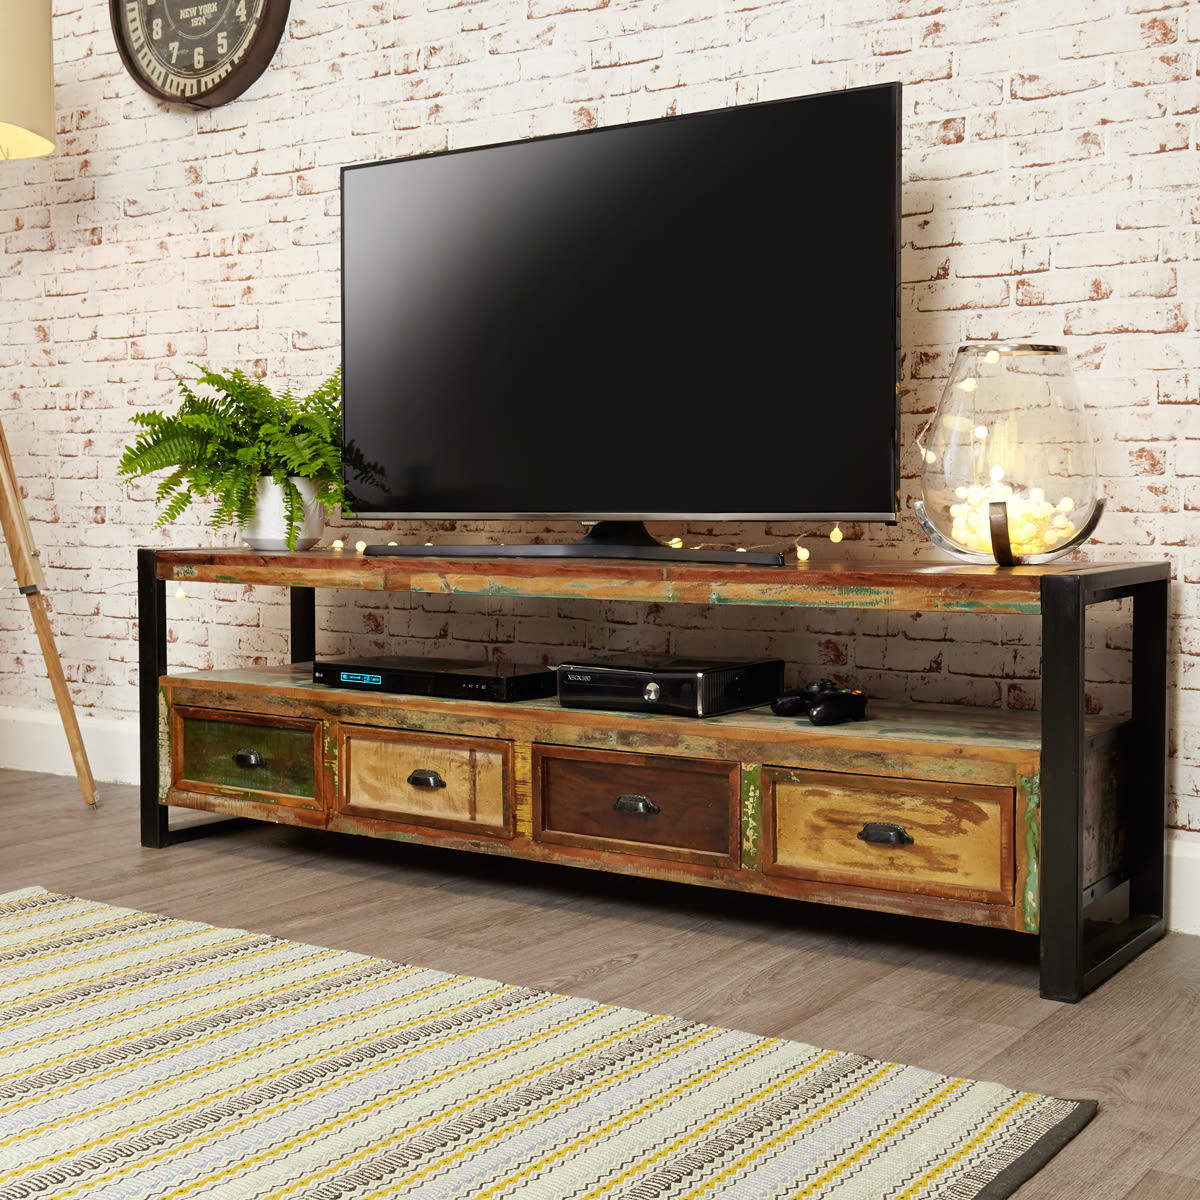 Urban Chic Open Widescreen Television Cabinet Was 163 480 00 Now 163 439 00 Wooden Furniture Store